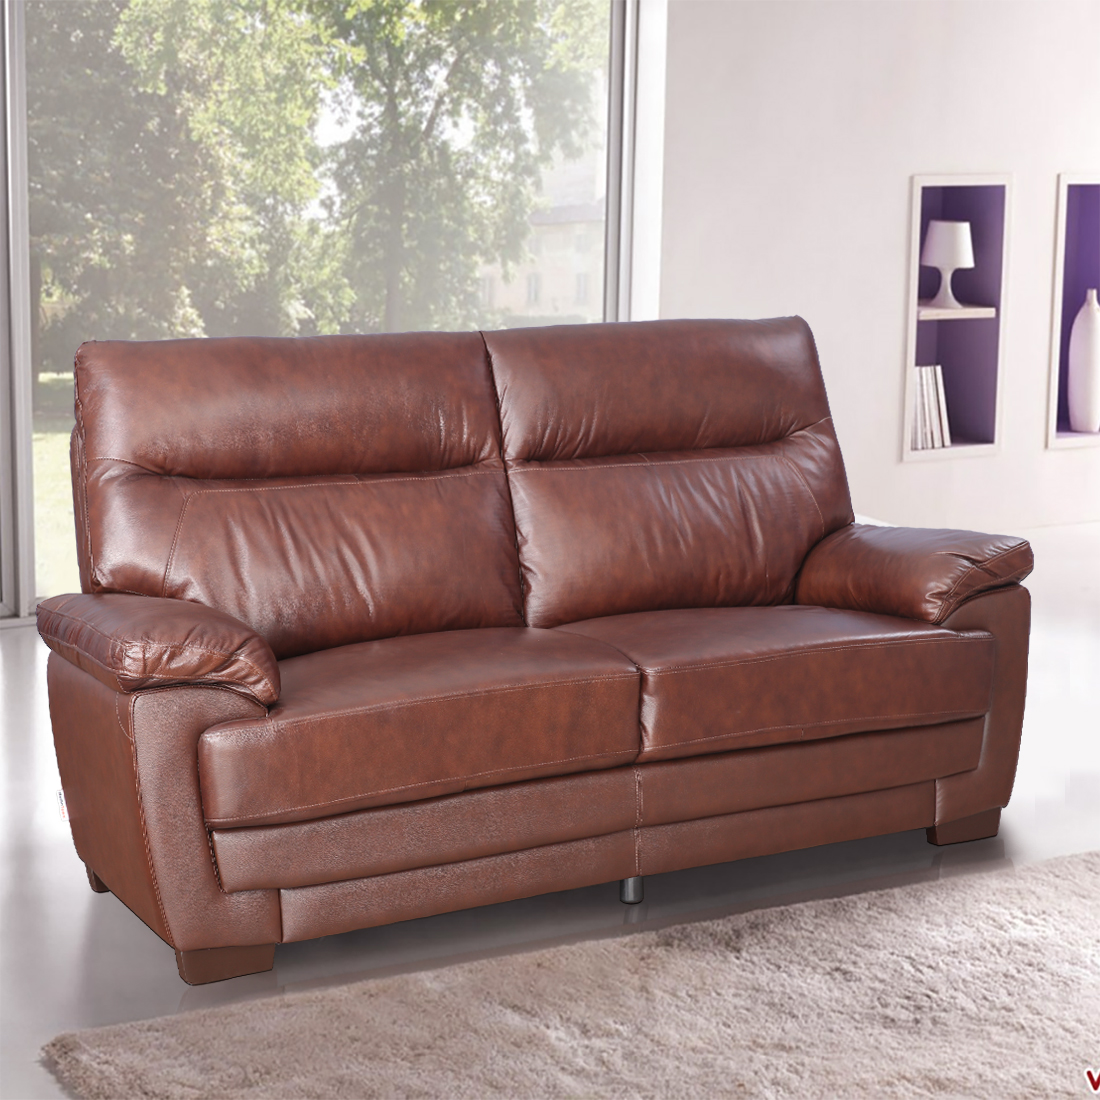 Jefferson Half Leather Three Seater Sofa in Brown Colour by HomeTown